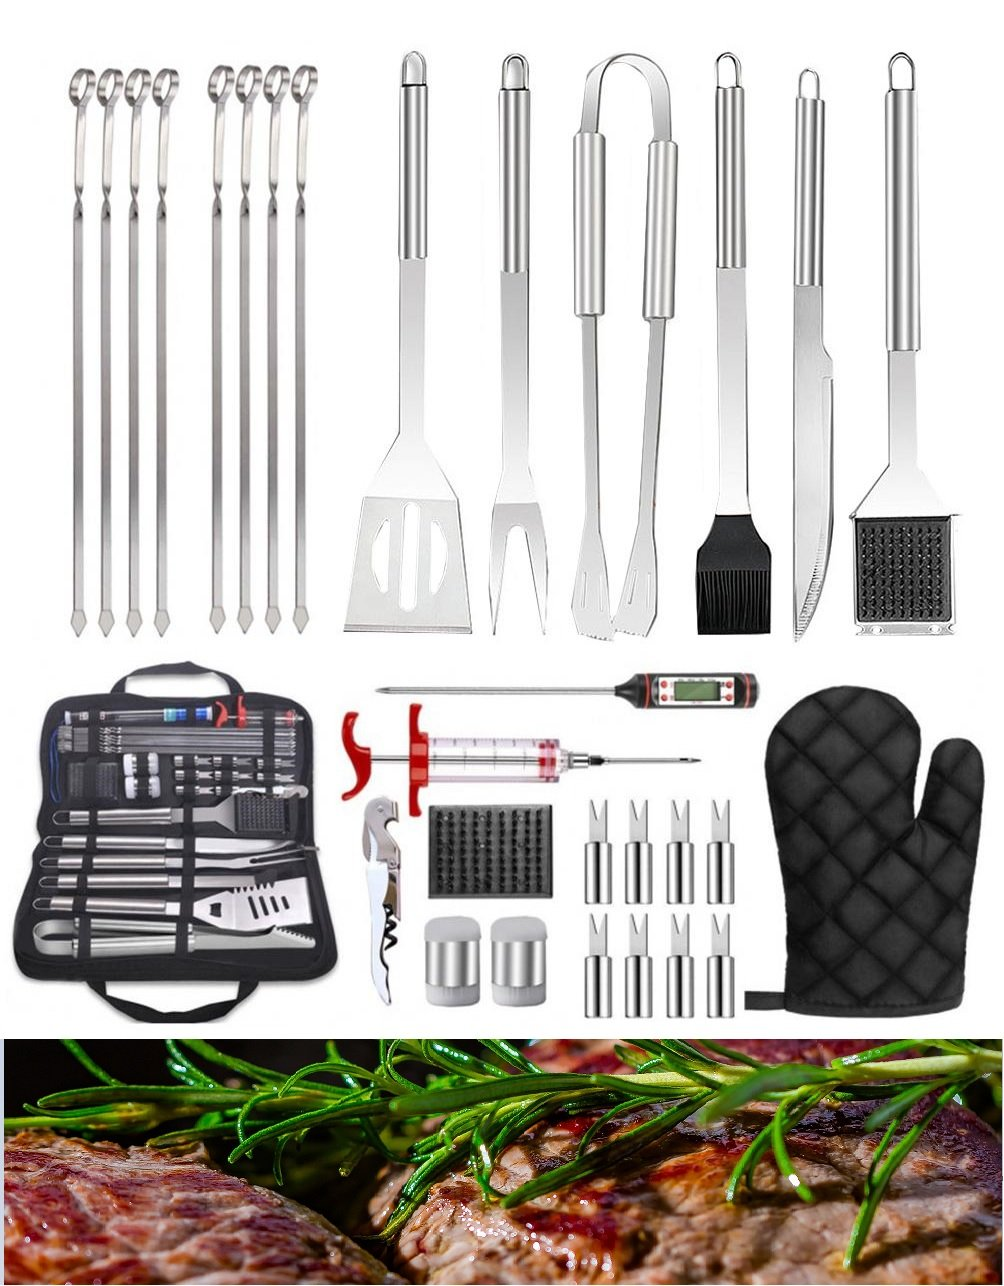 30Pcs Stainless Steel Barbecue Tool Set And Cooking Tools For Outdoor Camping Wefullfill